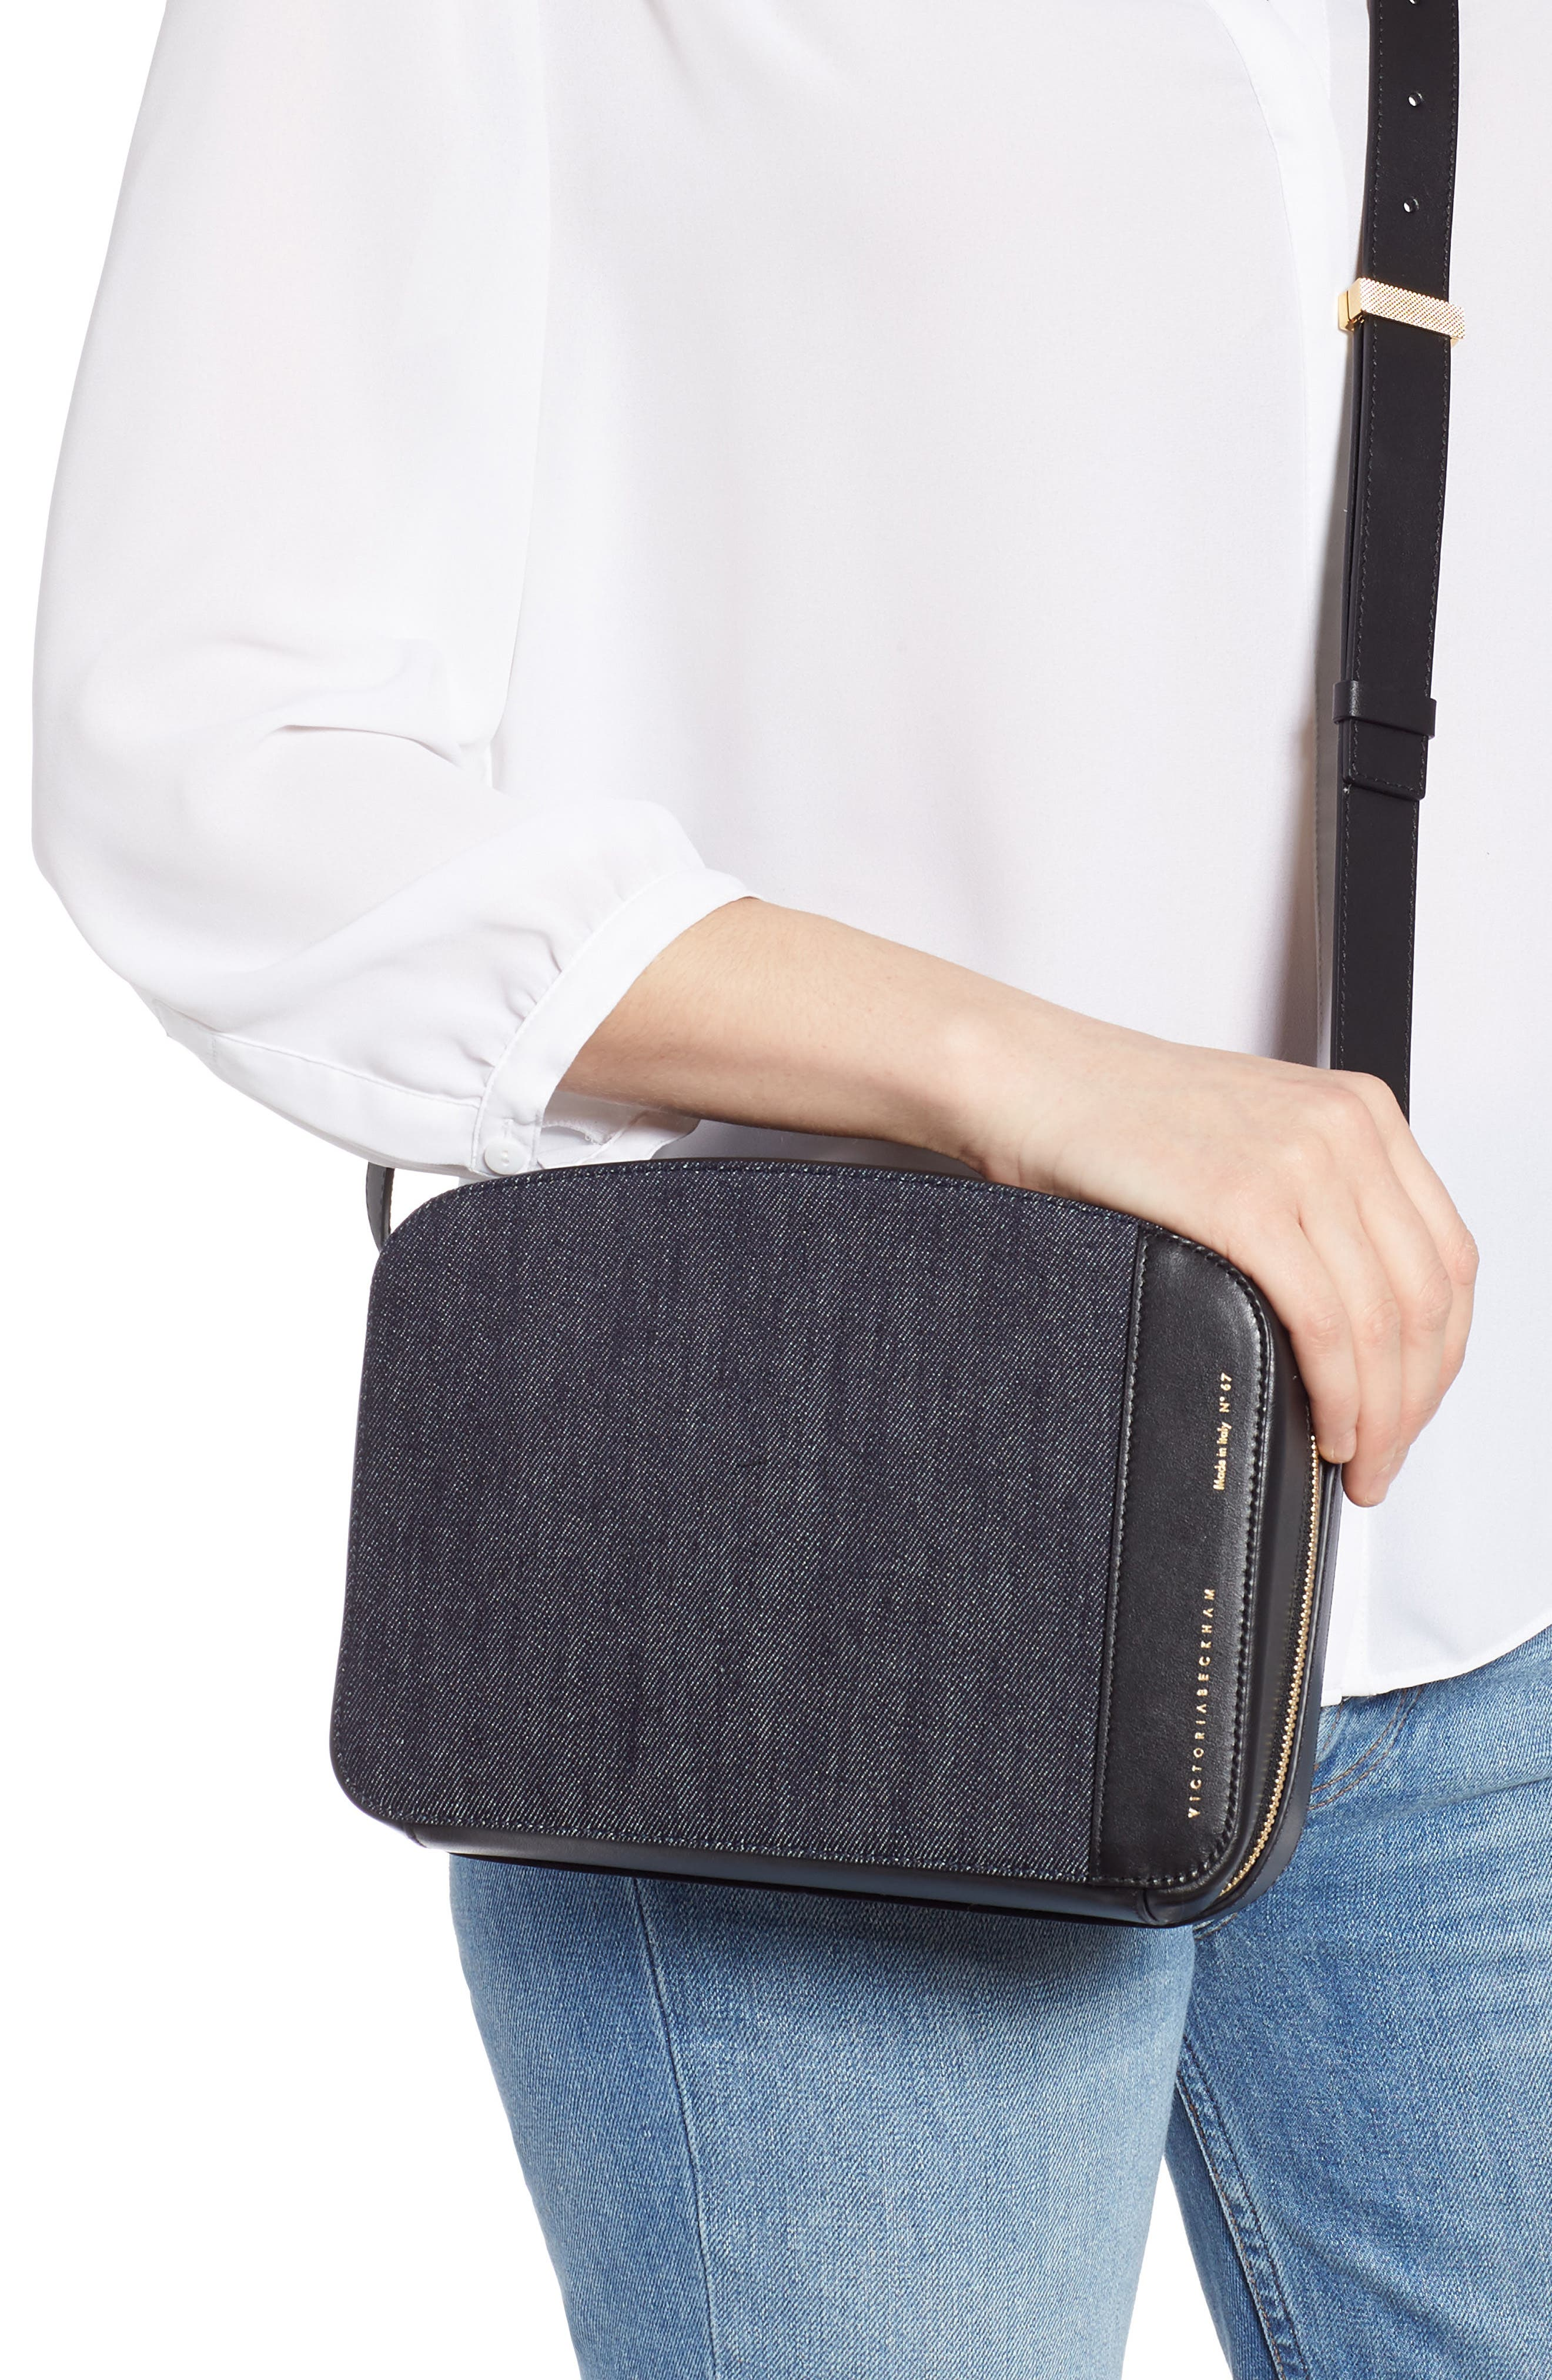 VICTORIA BECKHAM, Vanity Denim & Leather Camera Bag, Alternate thumbnail 2, color, INDIGO/ BLACK